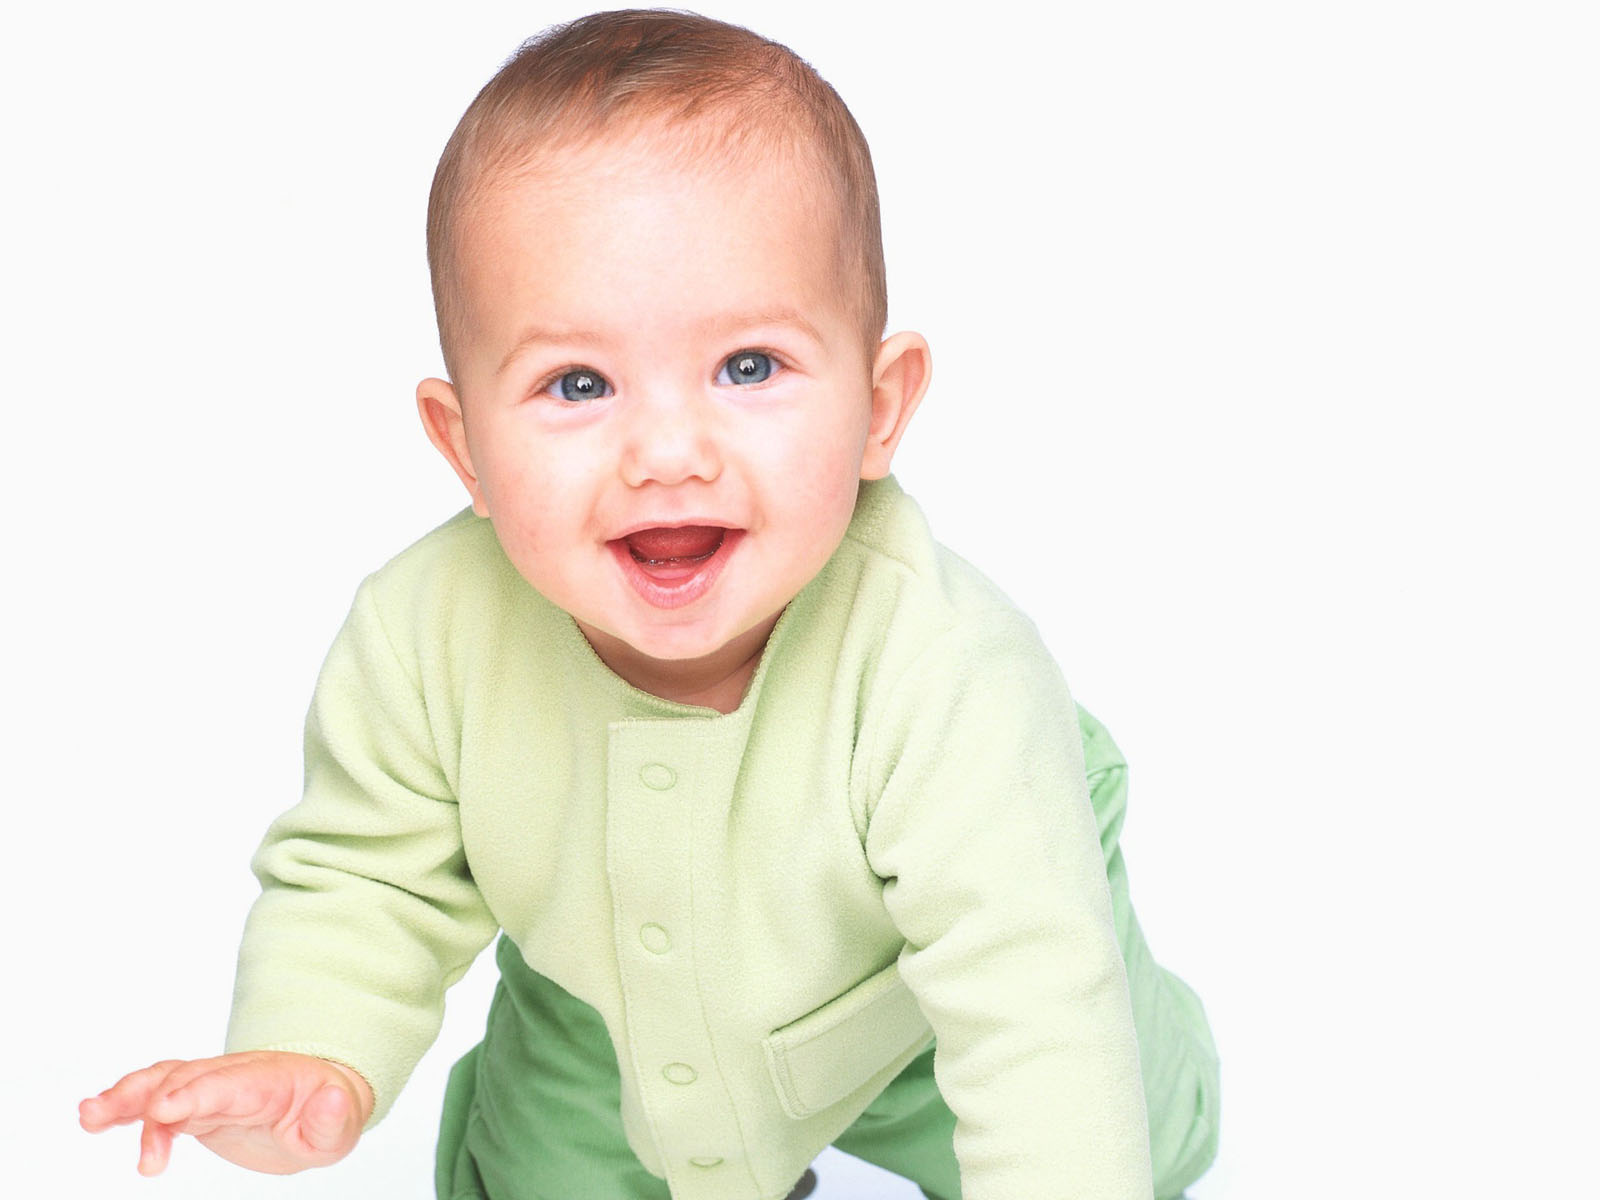 wallpapers: Cute Babies Smiling Wallpapers